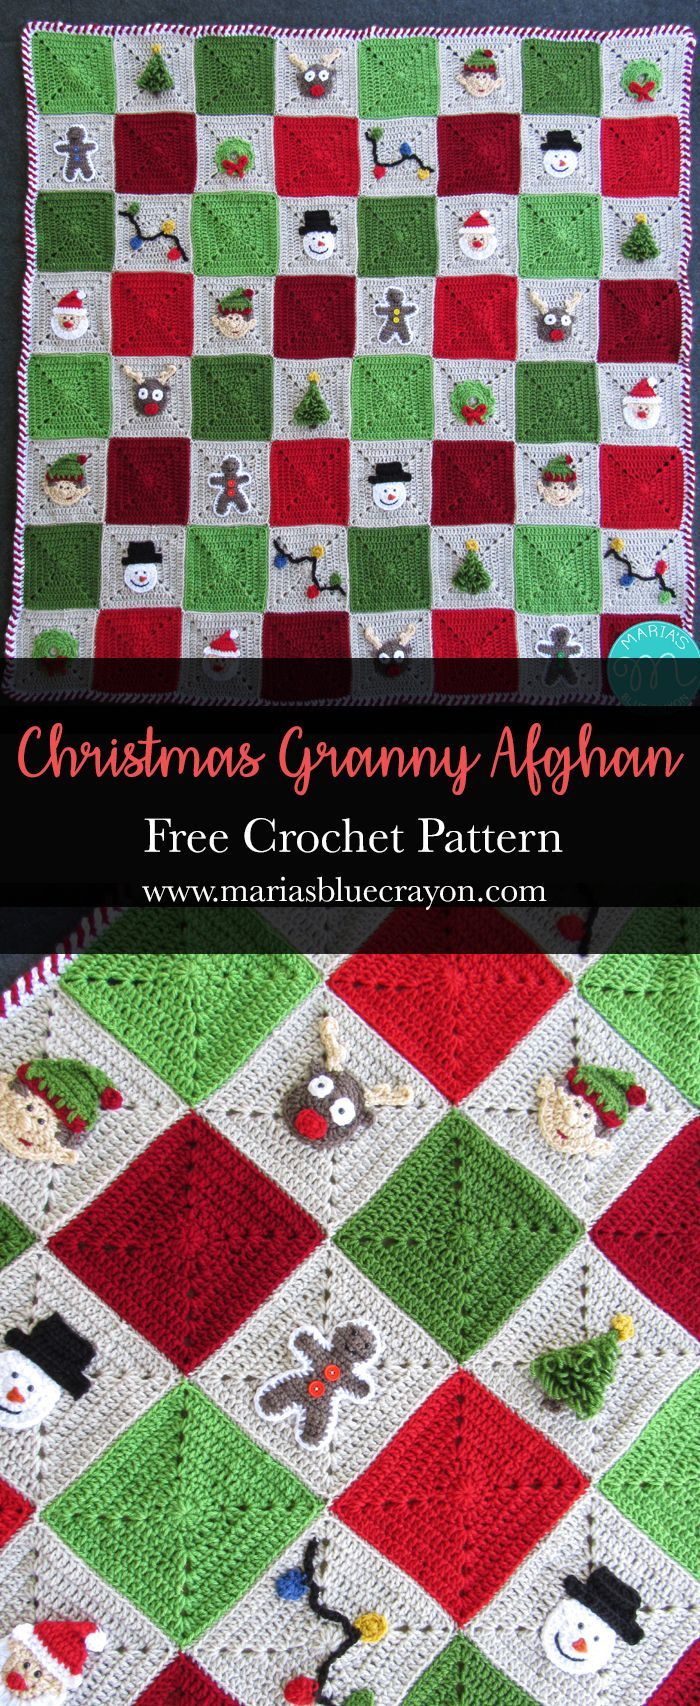 Crocheted Christmas Granny Square Afghan | Free Crochet Blanket Pattern | Festive Holiday Home Decor or Gift